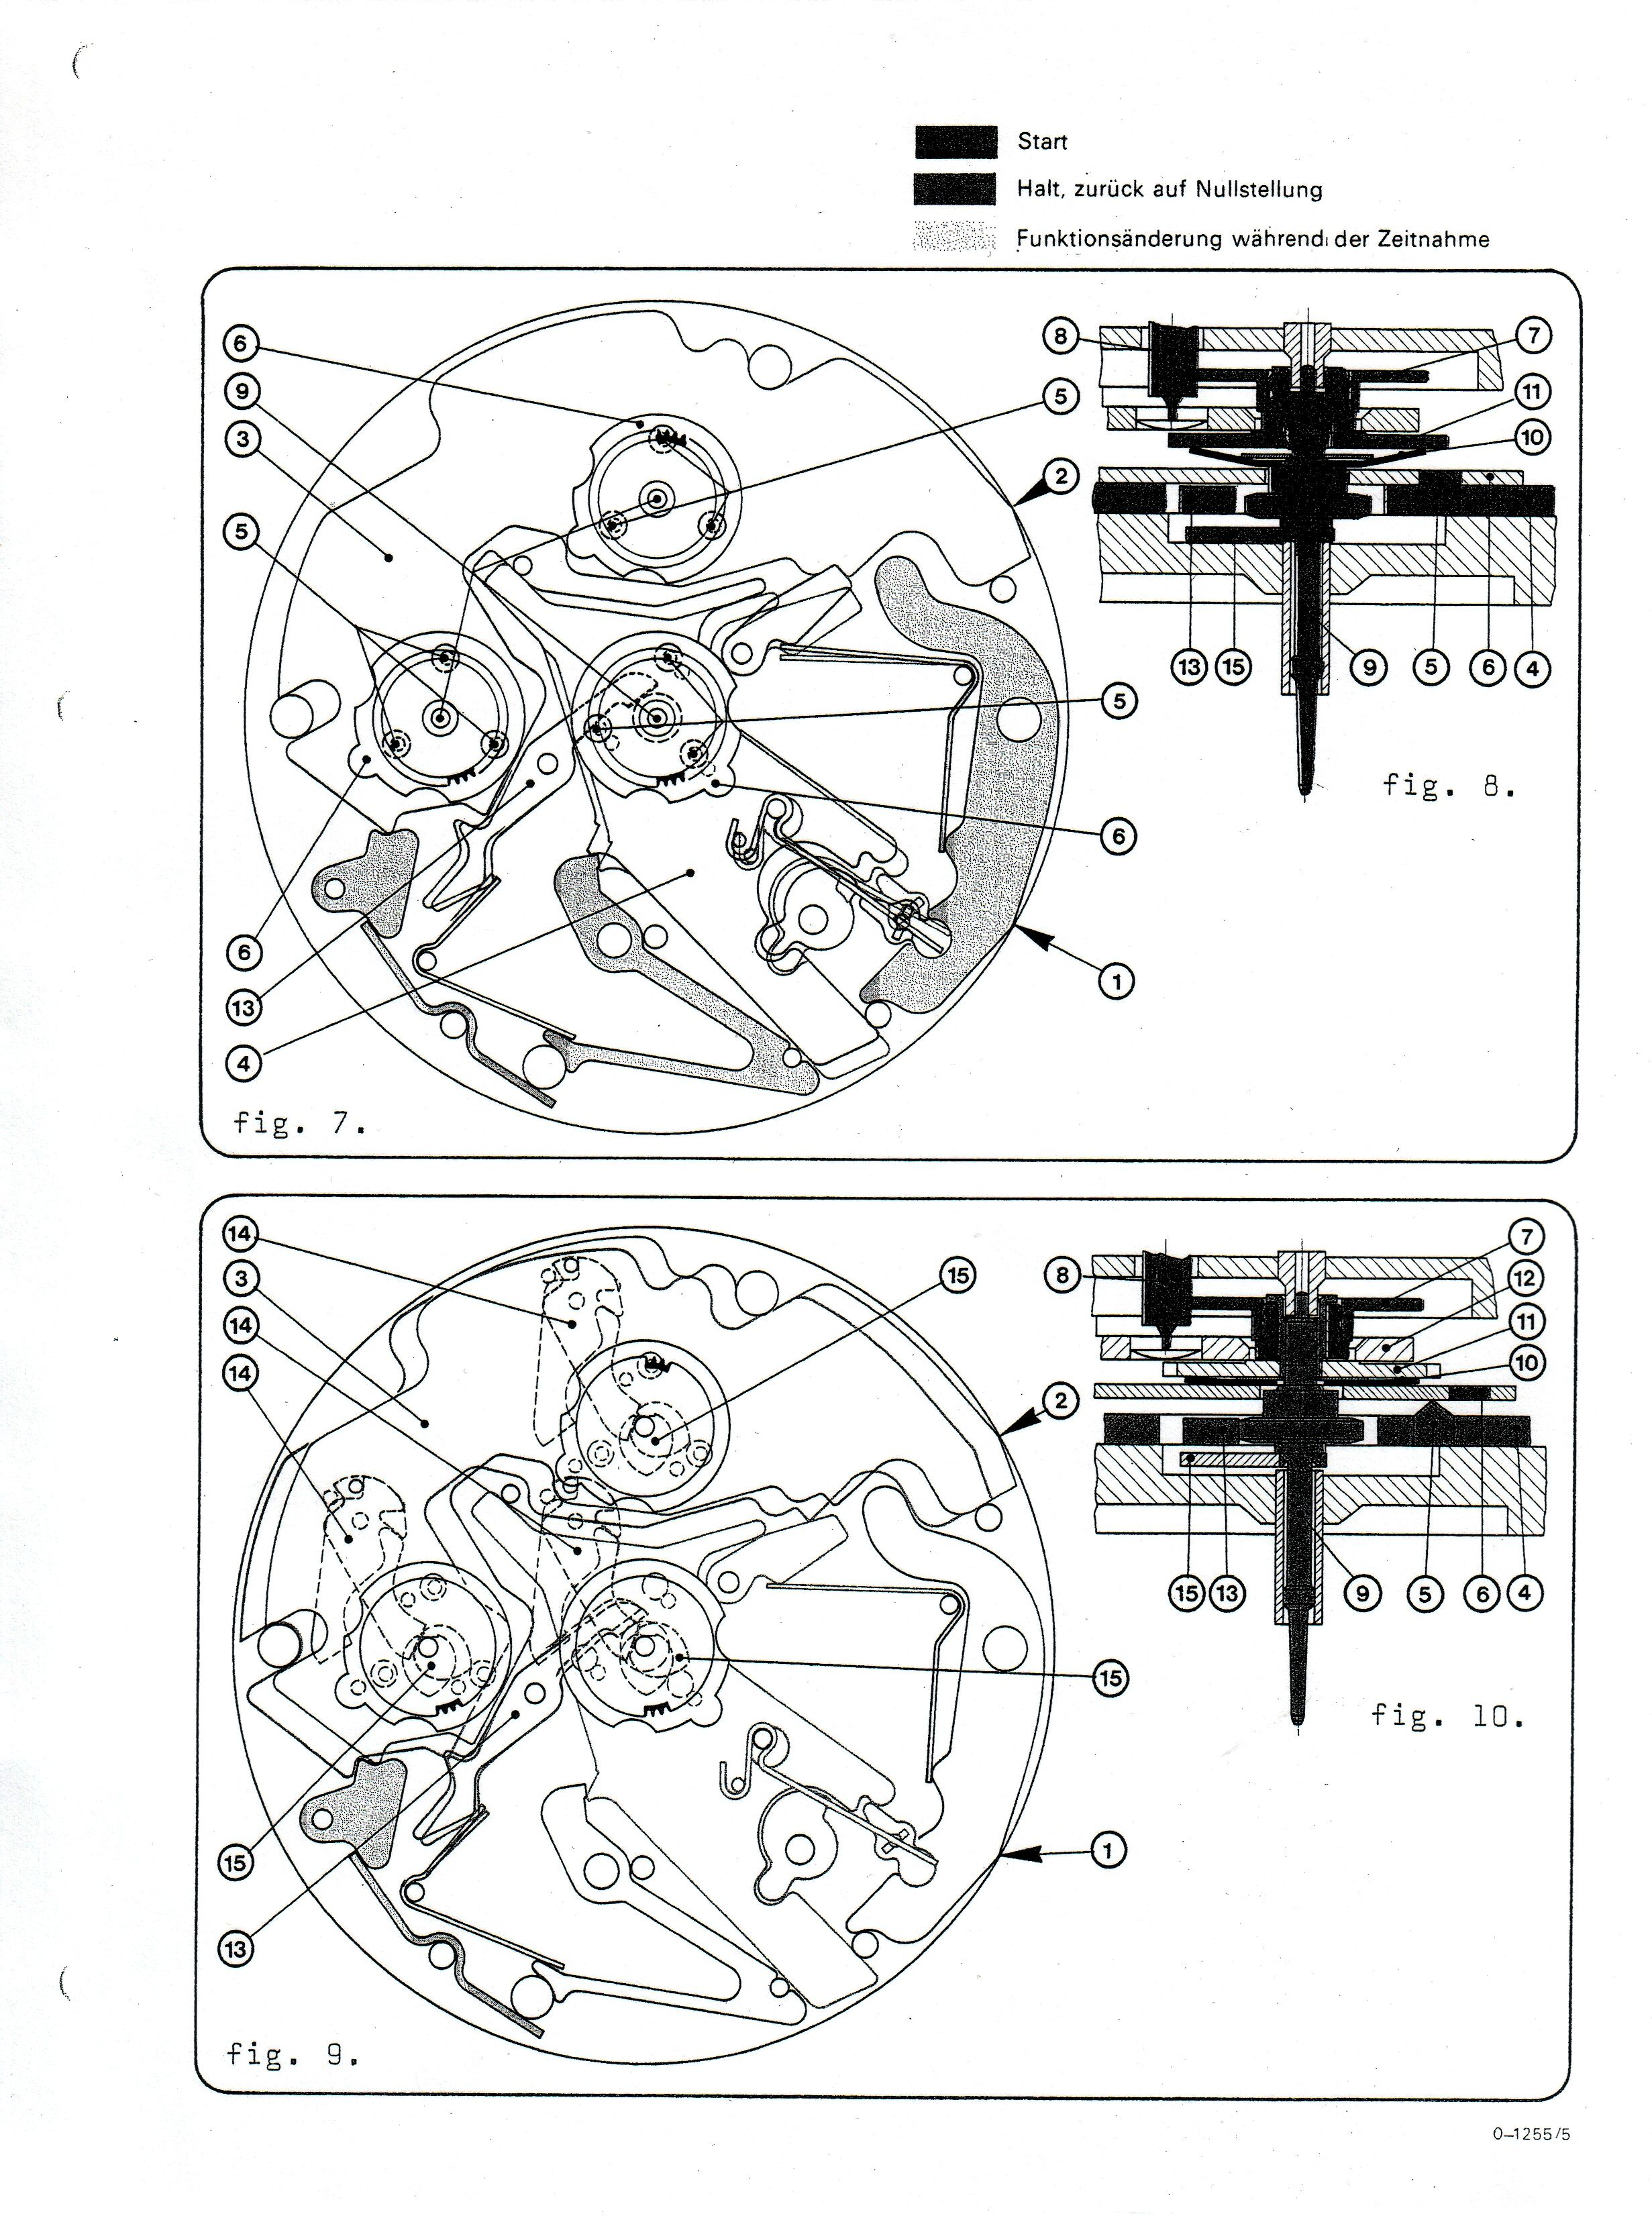 Omega Calibre 1255 (Speedsonic) Service Manual in German